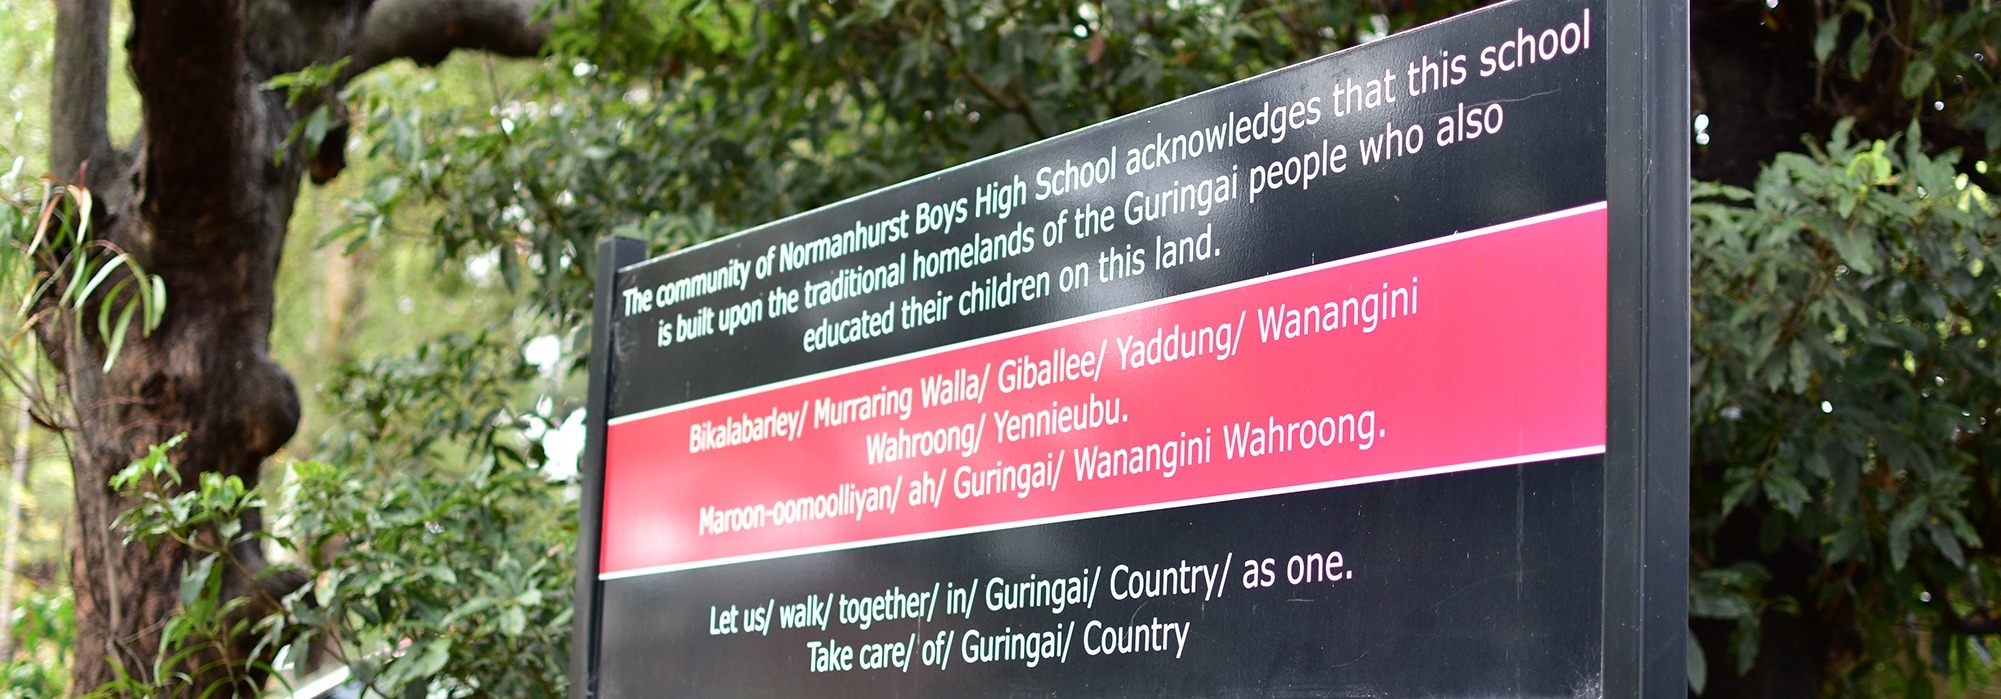 Sign acknowledging the traditional owners of the land on which Normanhurst Boys High School resides.